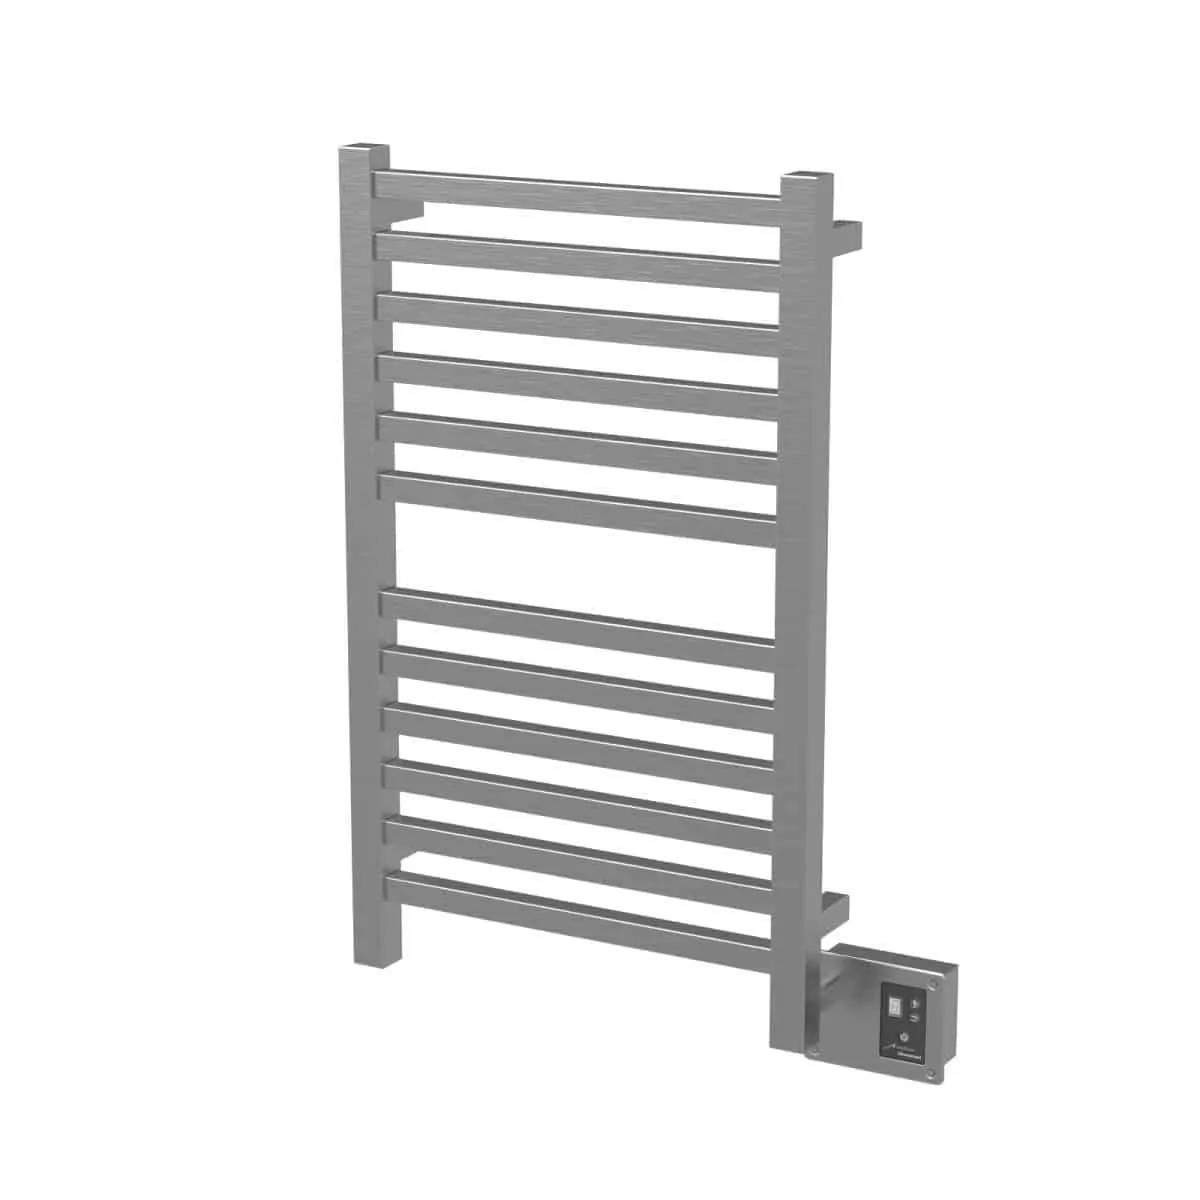 Amba Q2033B Quadro Heated Towel Rack - Brushed